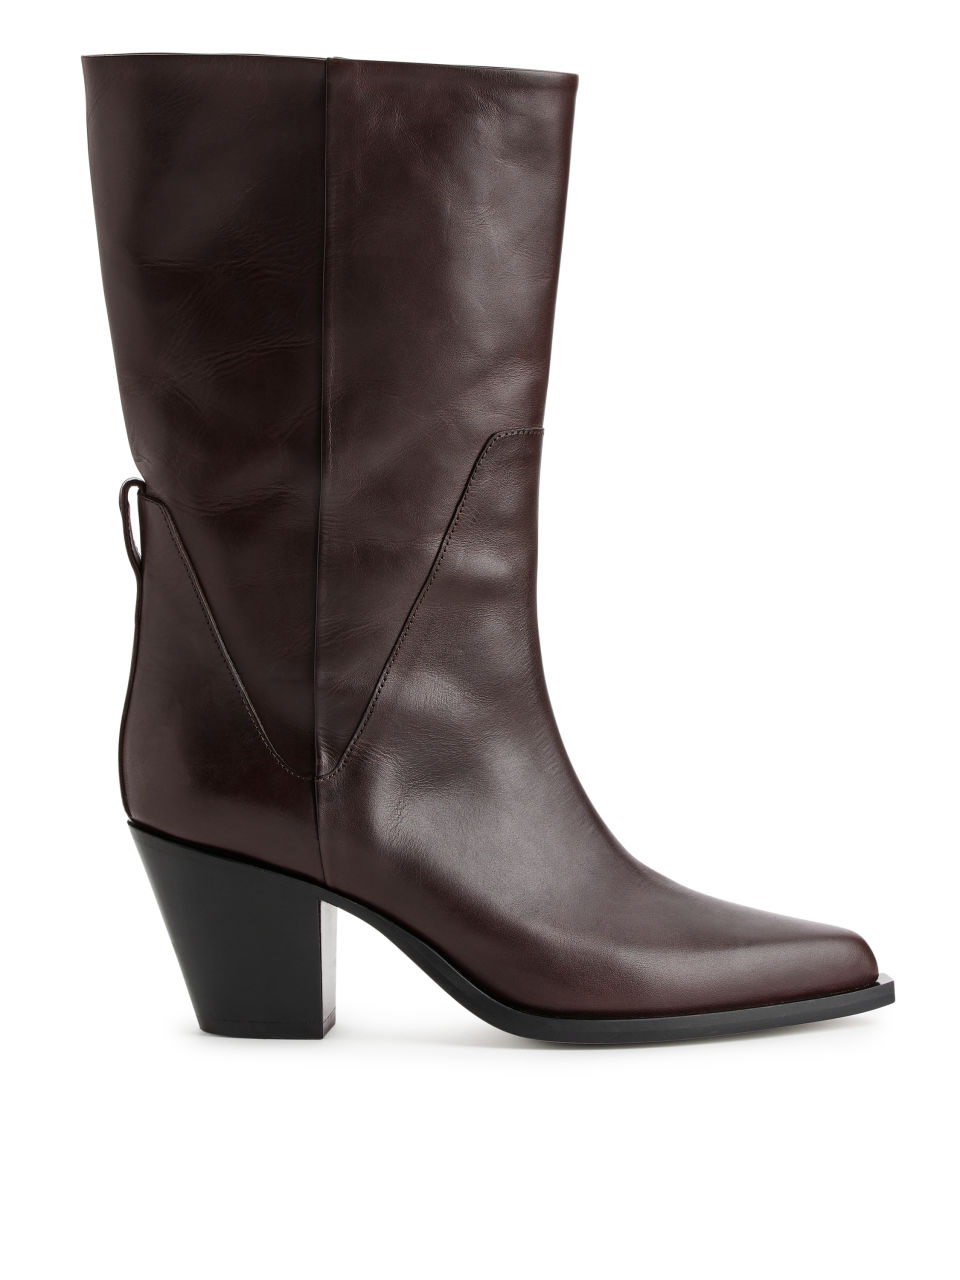 Leather Cowboy Boots - Brown